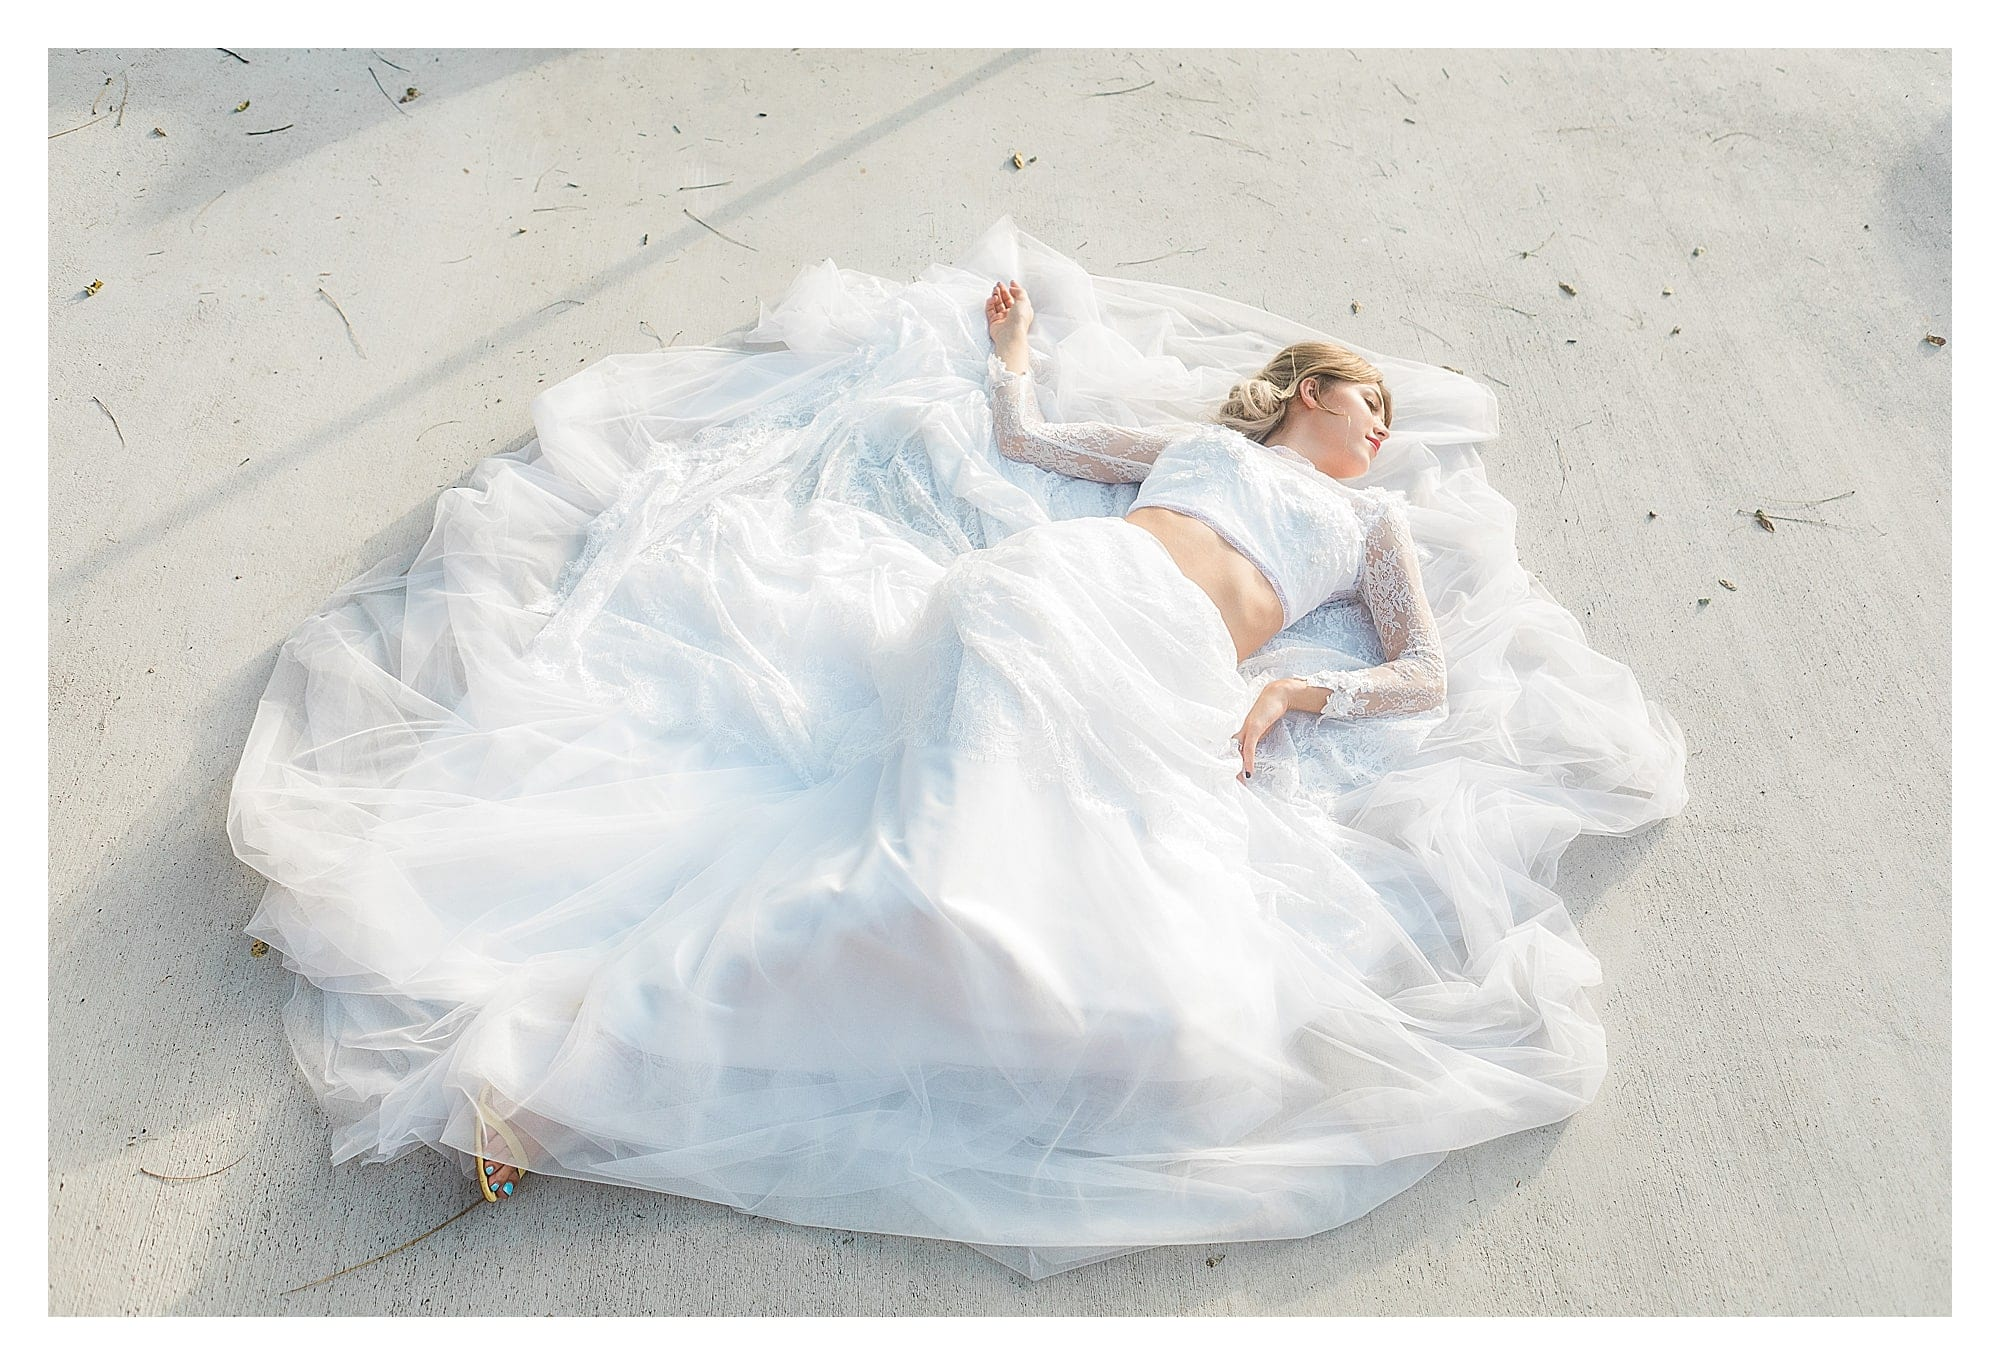 Bride wearing two piece white lace wedding dress laying on concrete posing